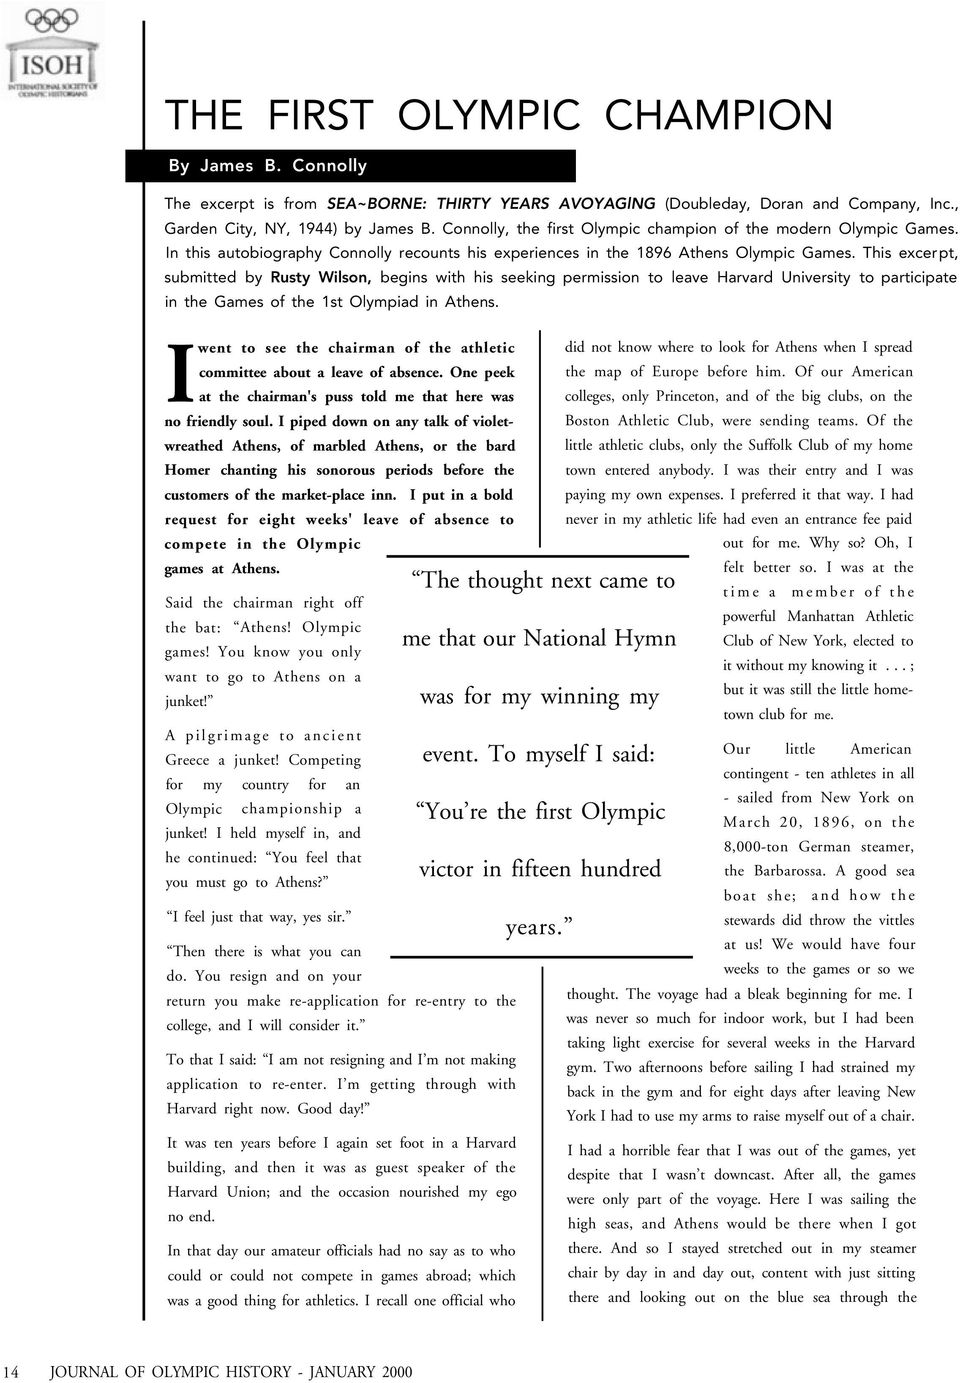 This excerpt, submitted by Rusty Wilson, begins with his seeking permission to leave Harvard University to participate in the Games of the 1st Olympiad in Athens.